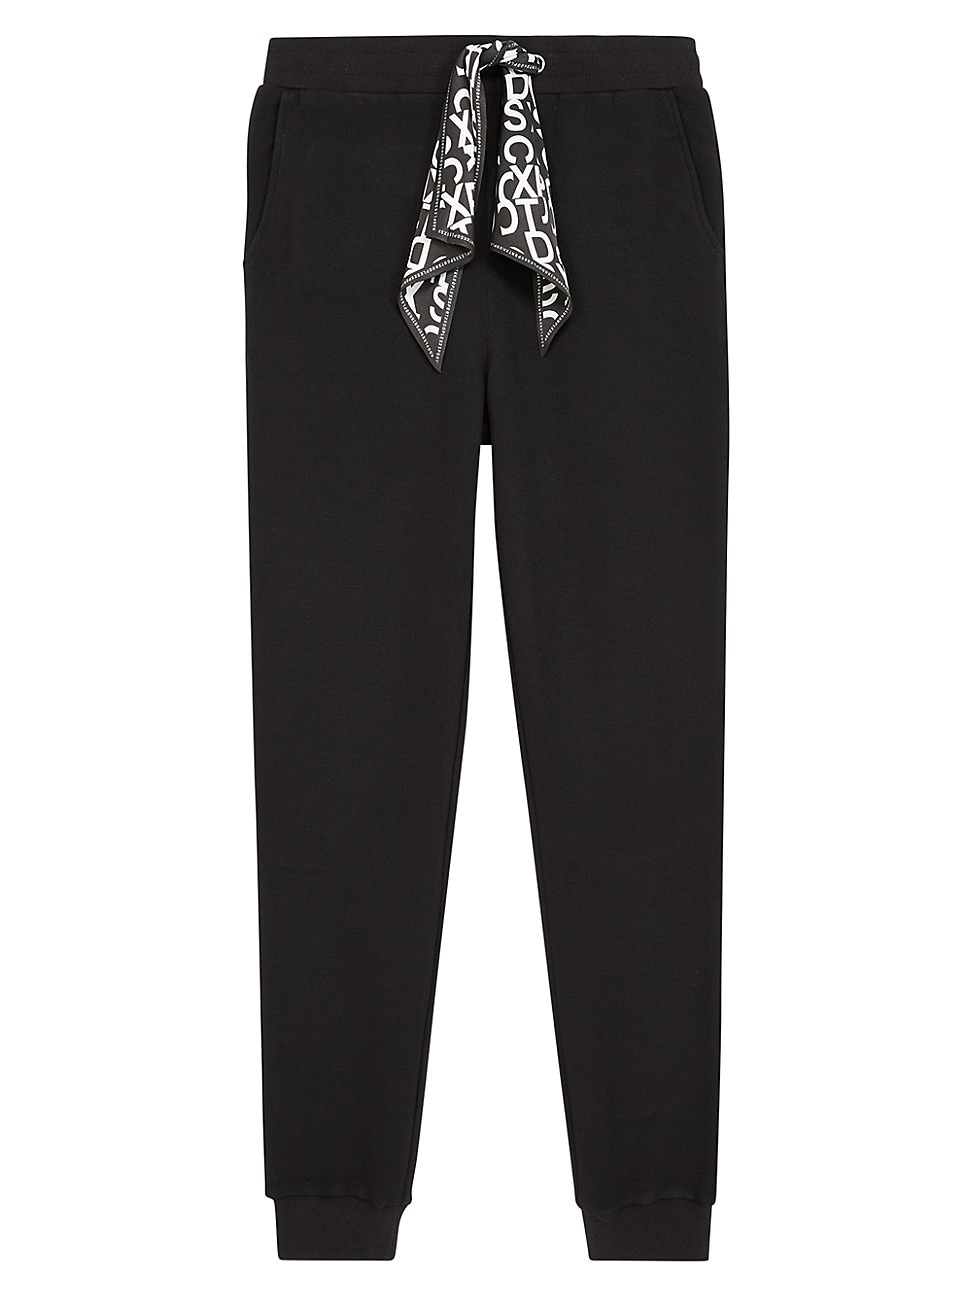 The Kooples WOMEN'S SCARF DETAIL JOGGER PANTS